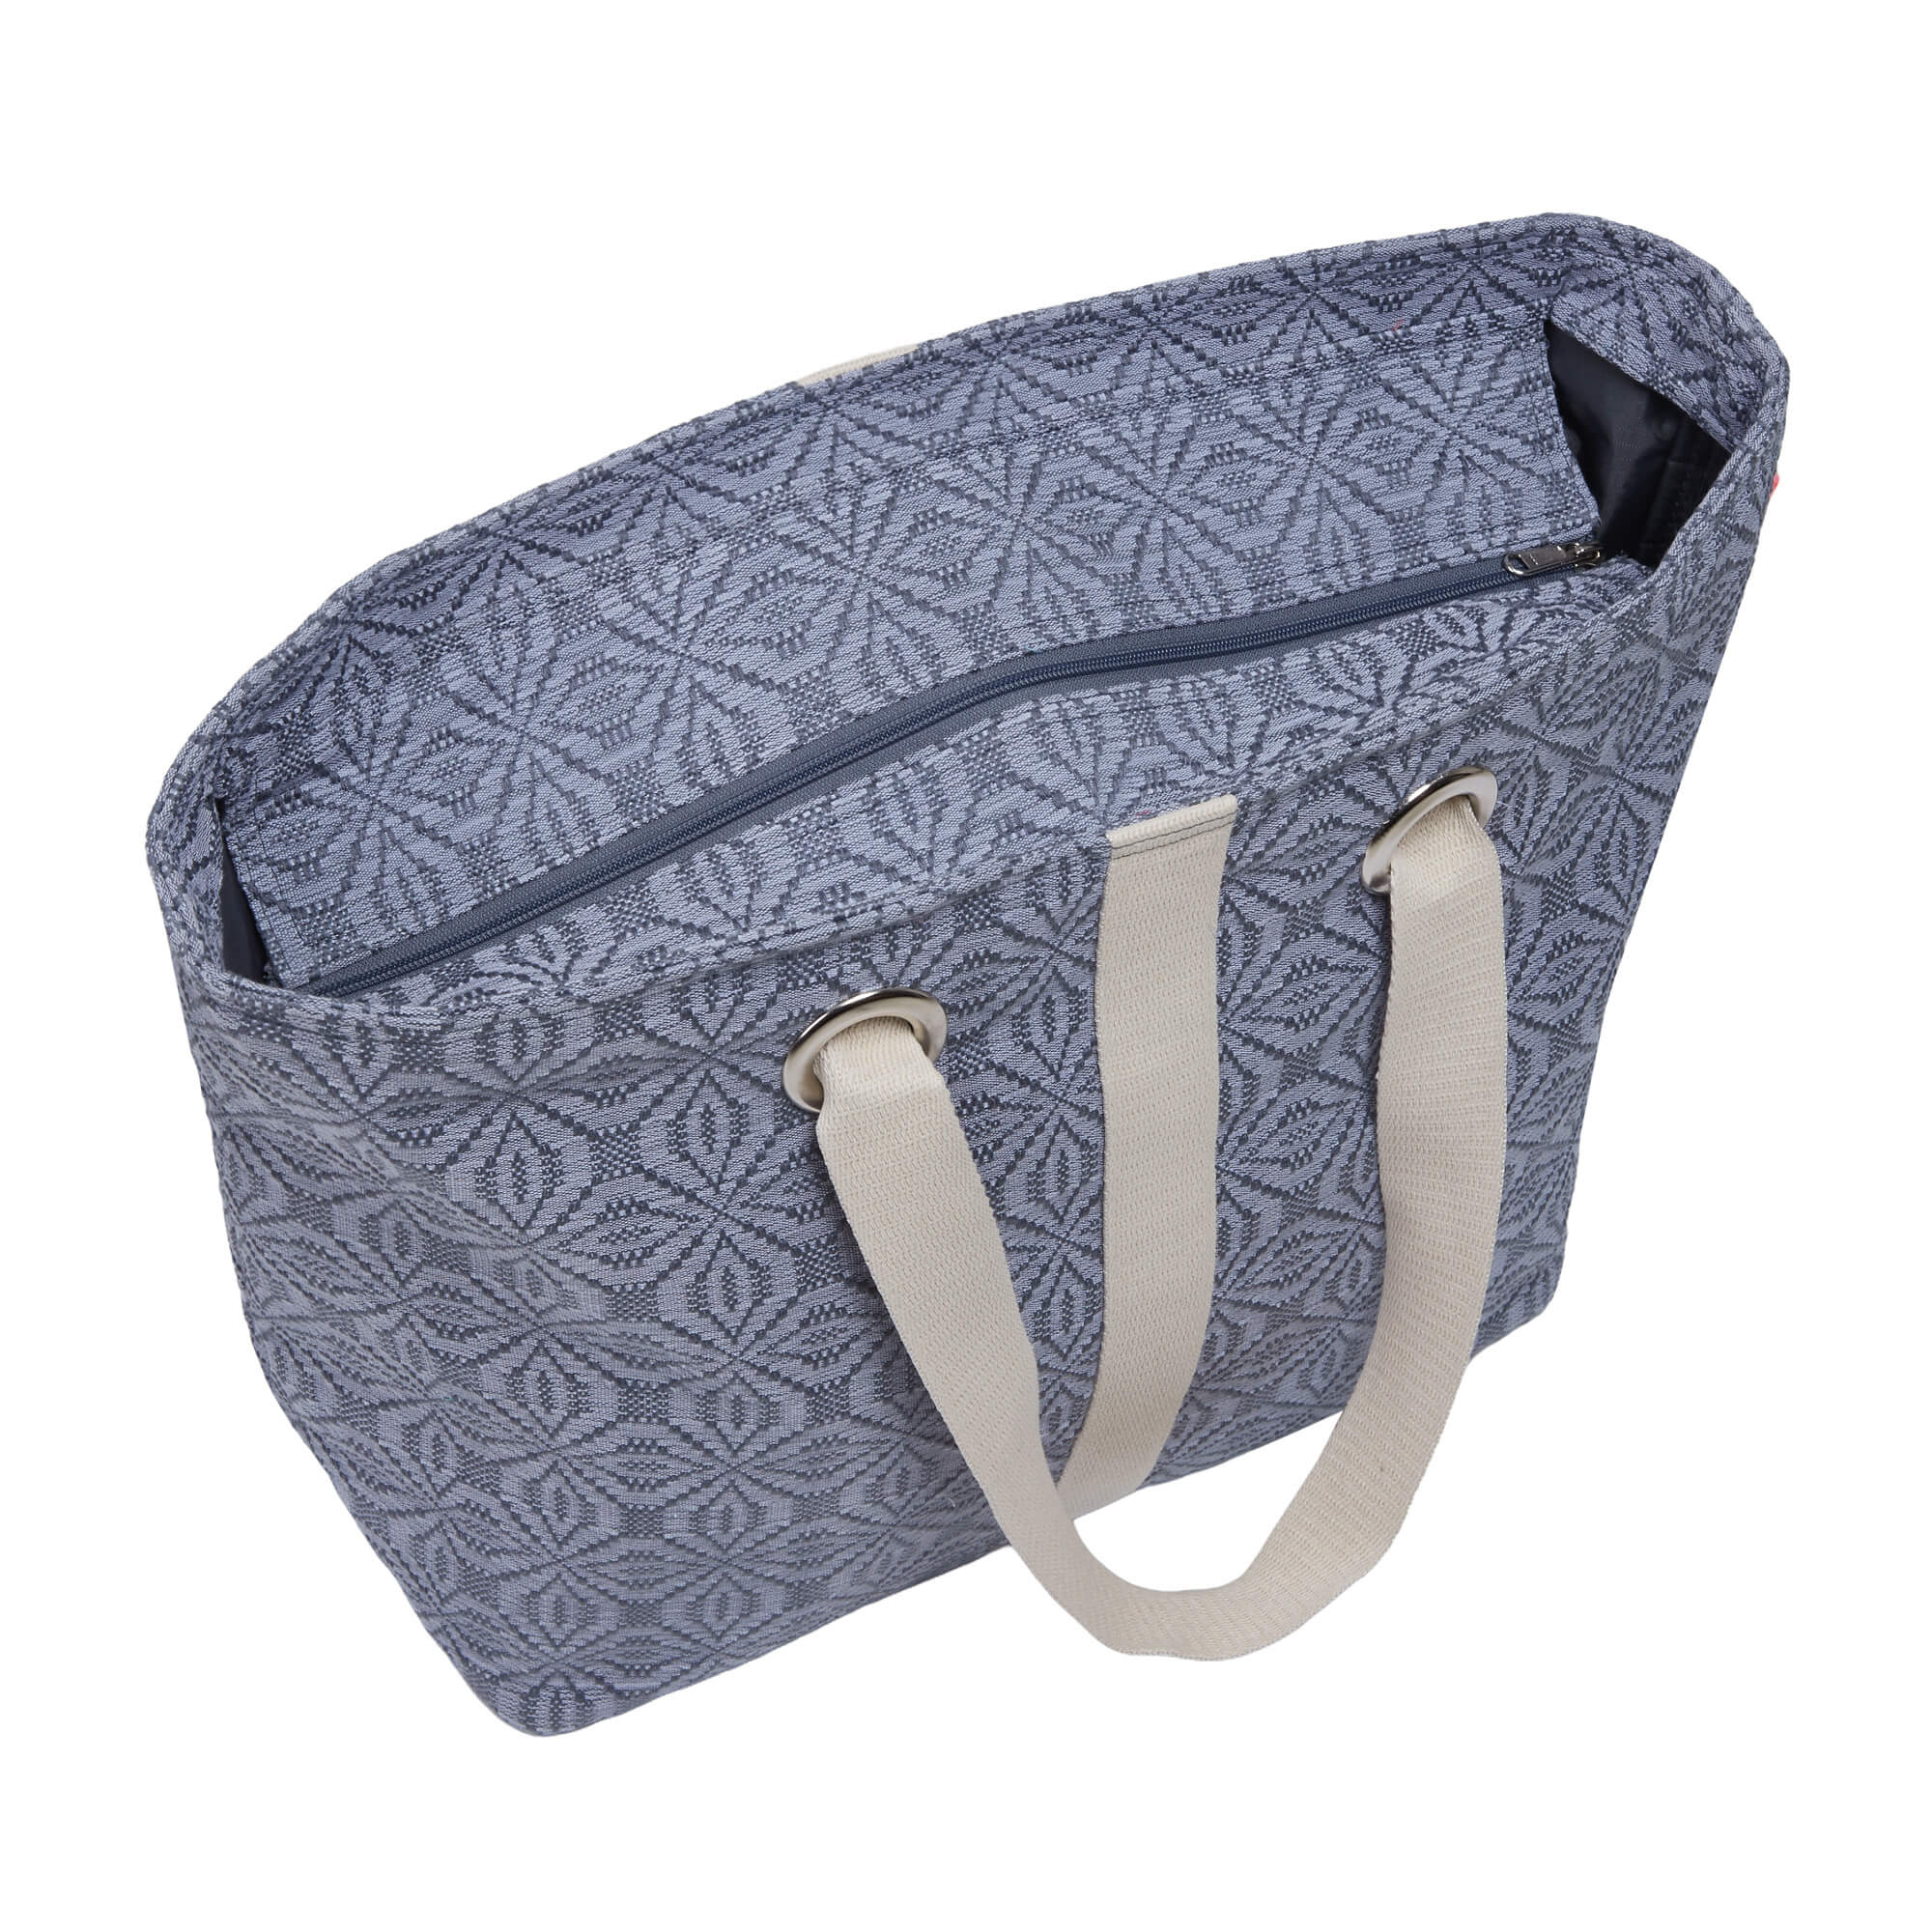 Grey Lollipop Beach Bag